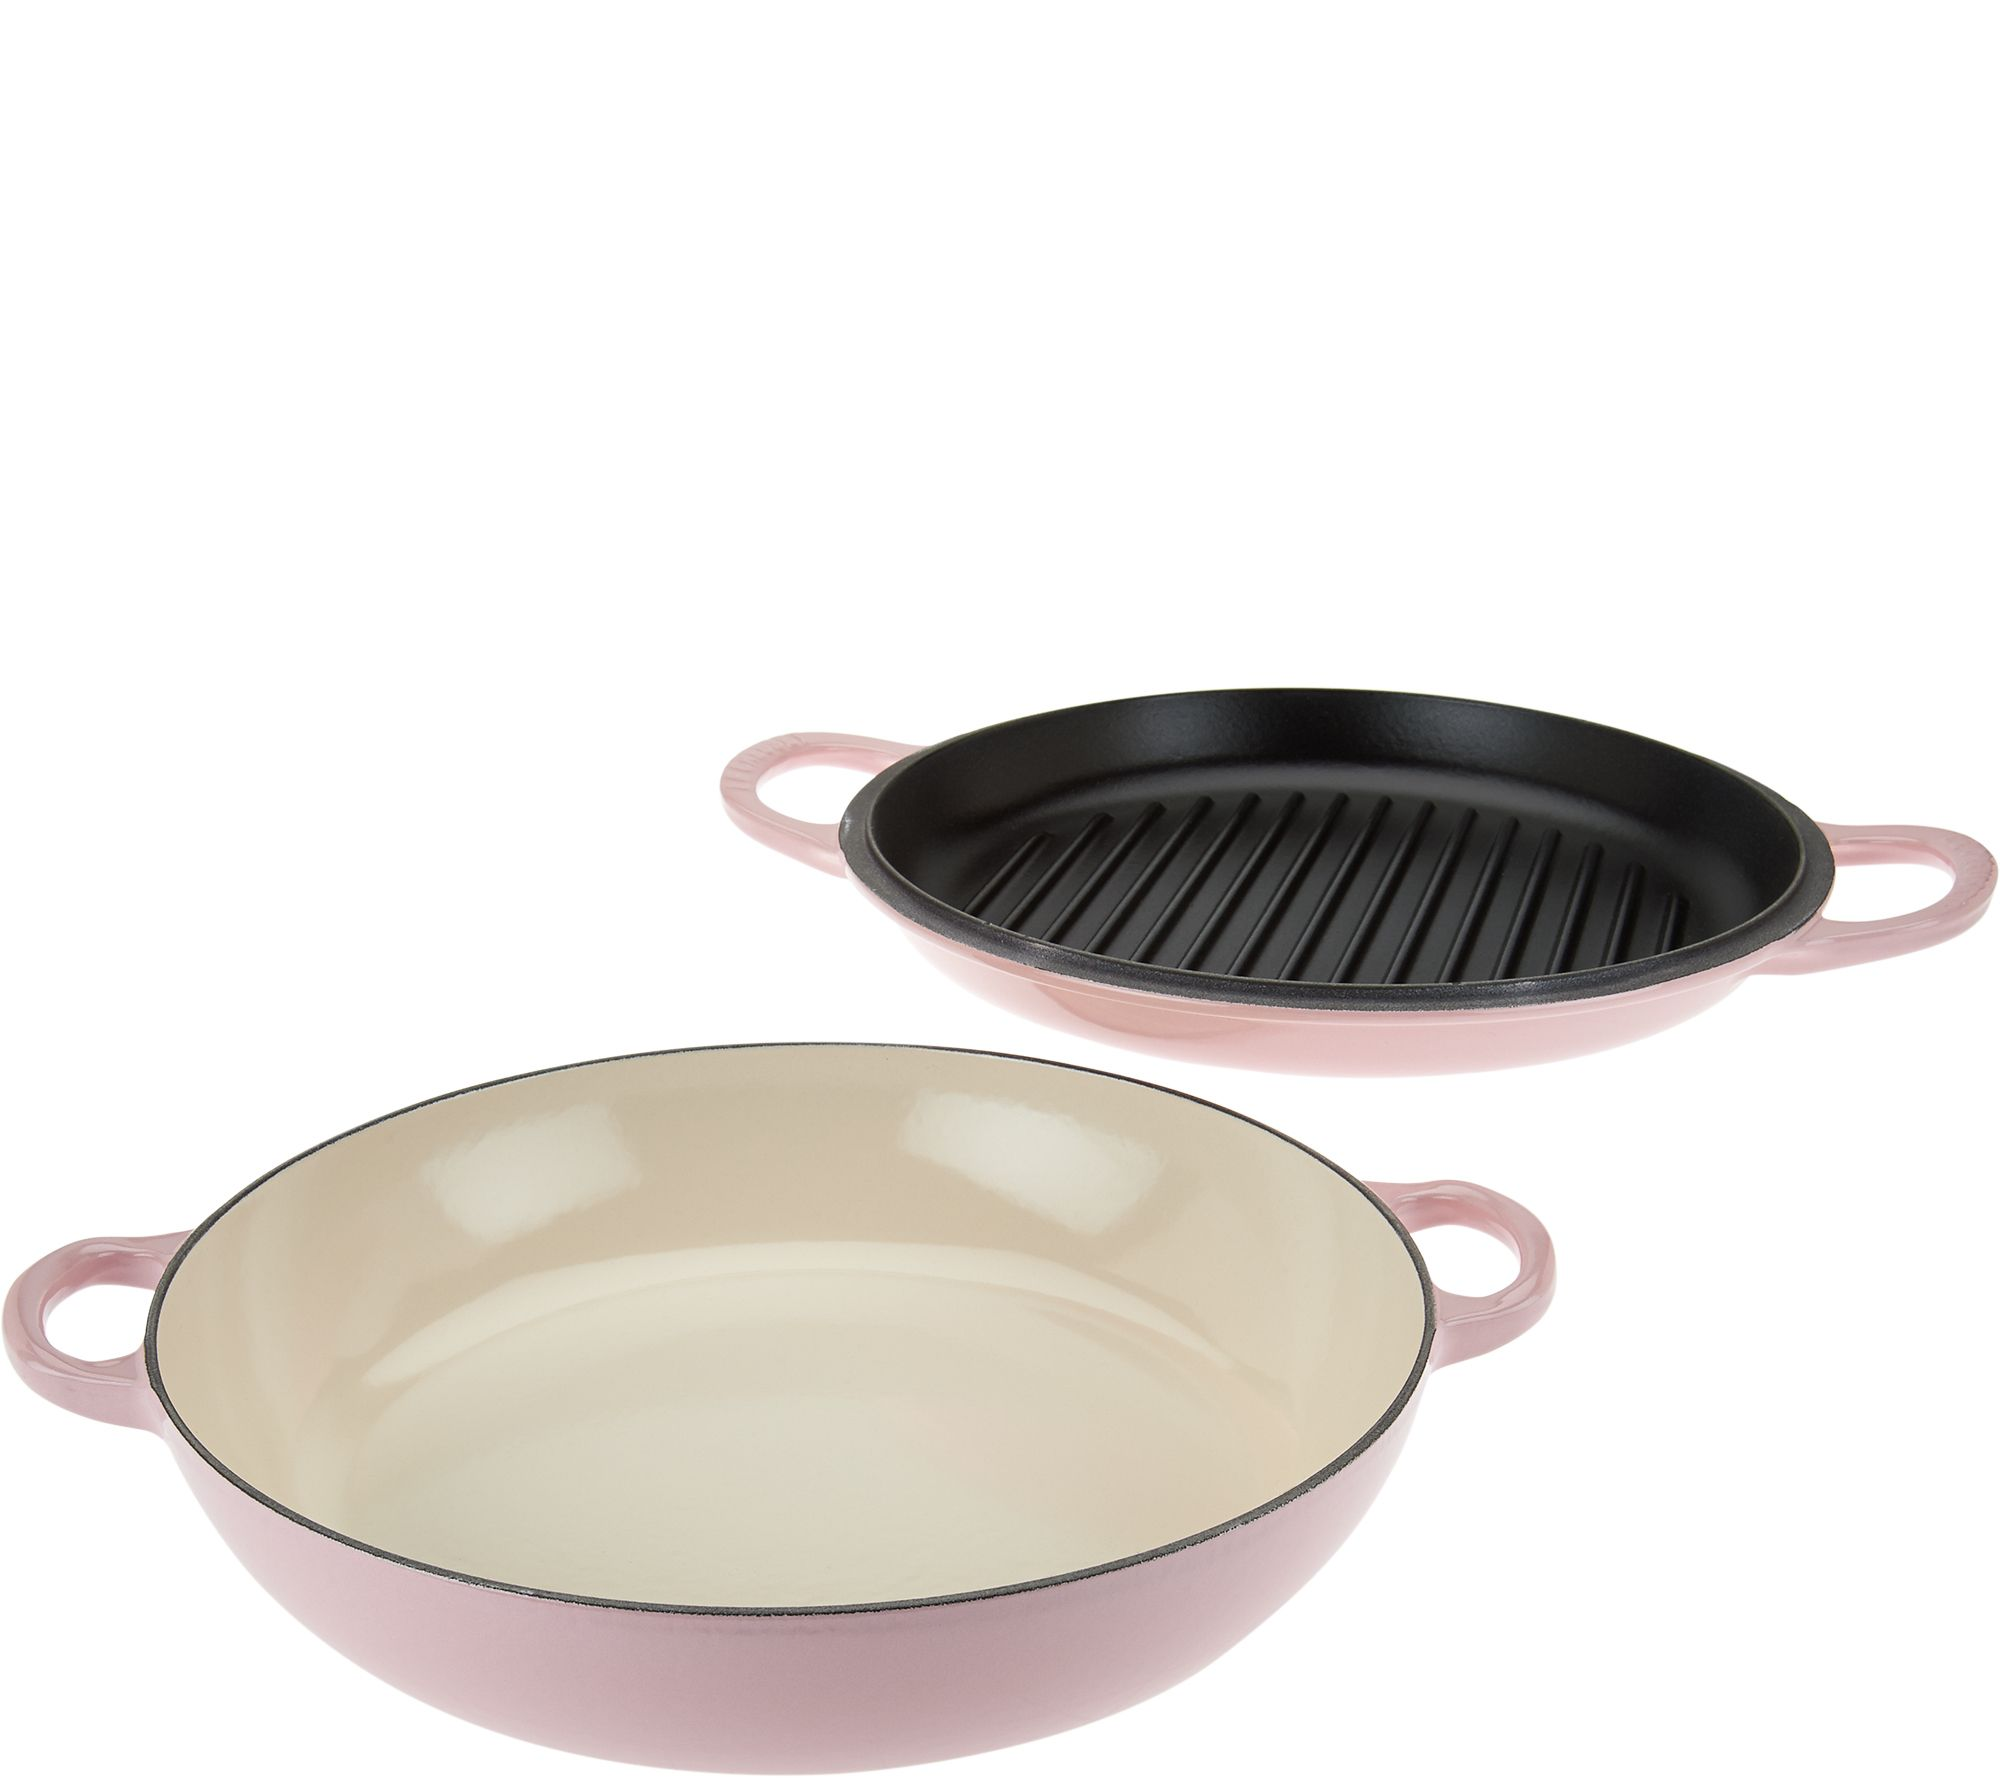 Le Creuset 3.5qt Cast Iron Multi-Function Pan with Grill Lid ...